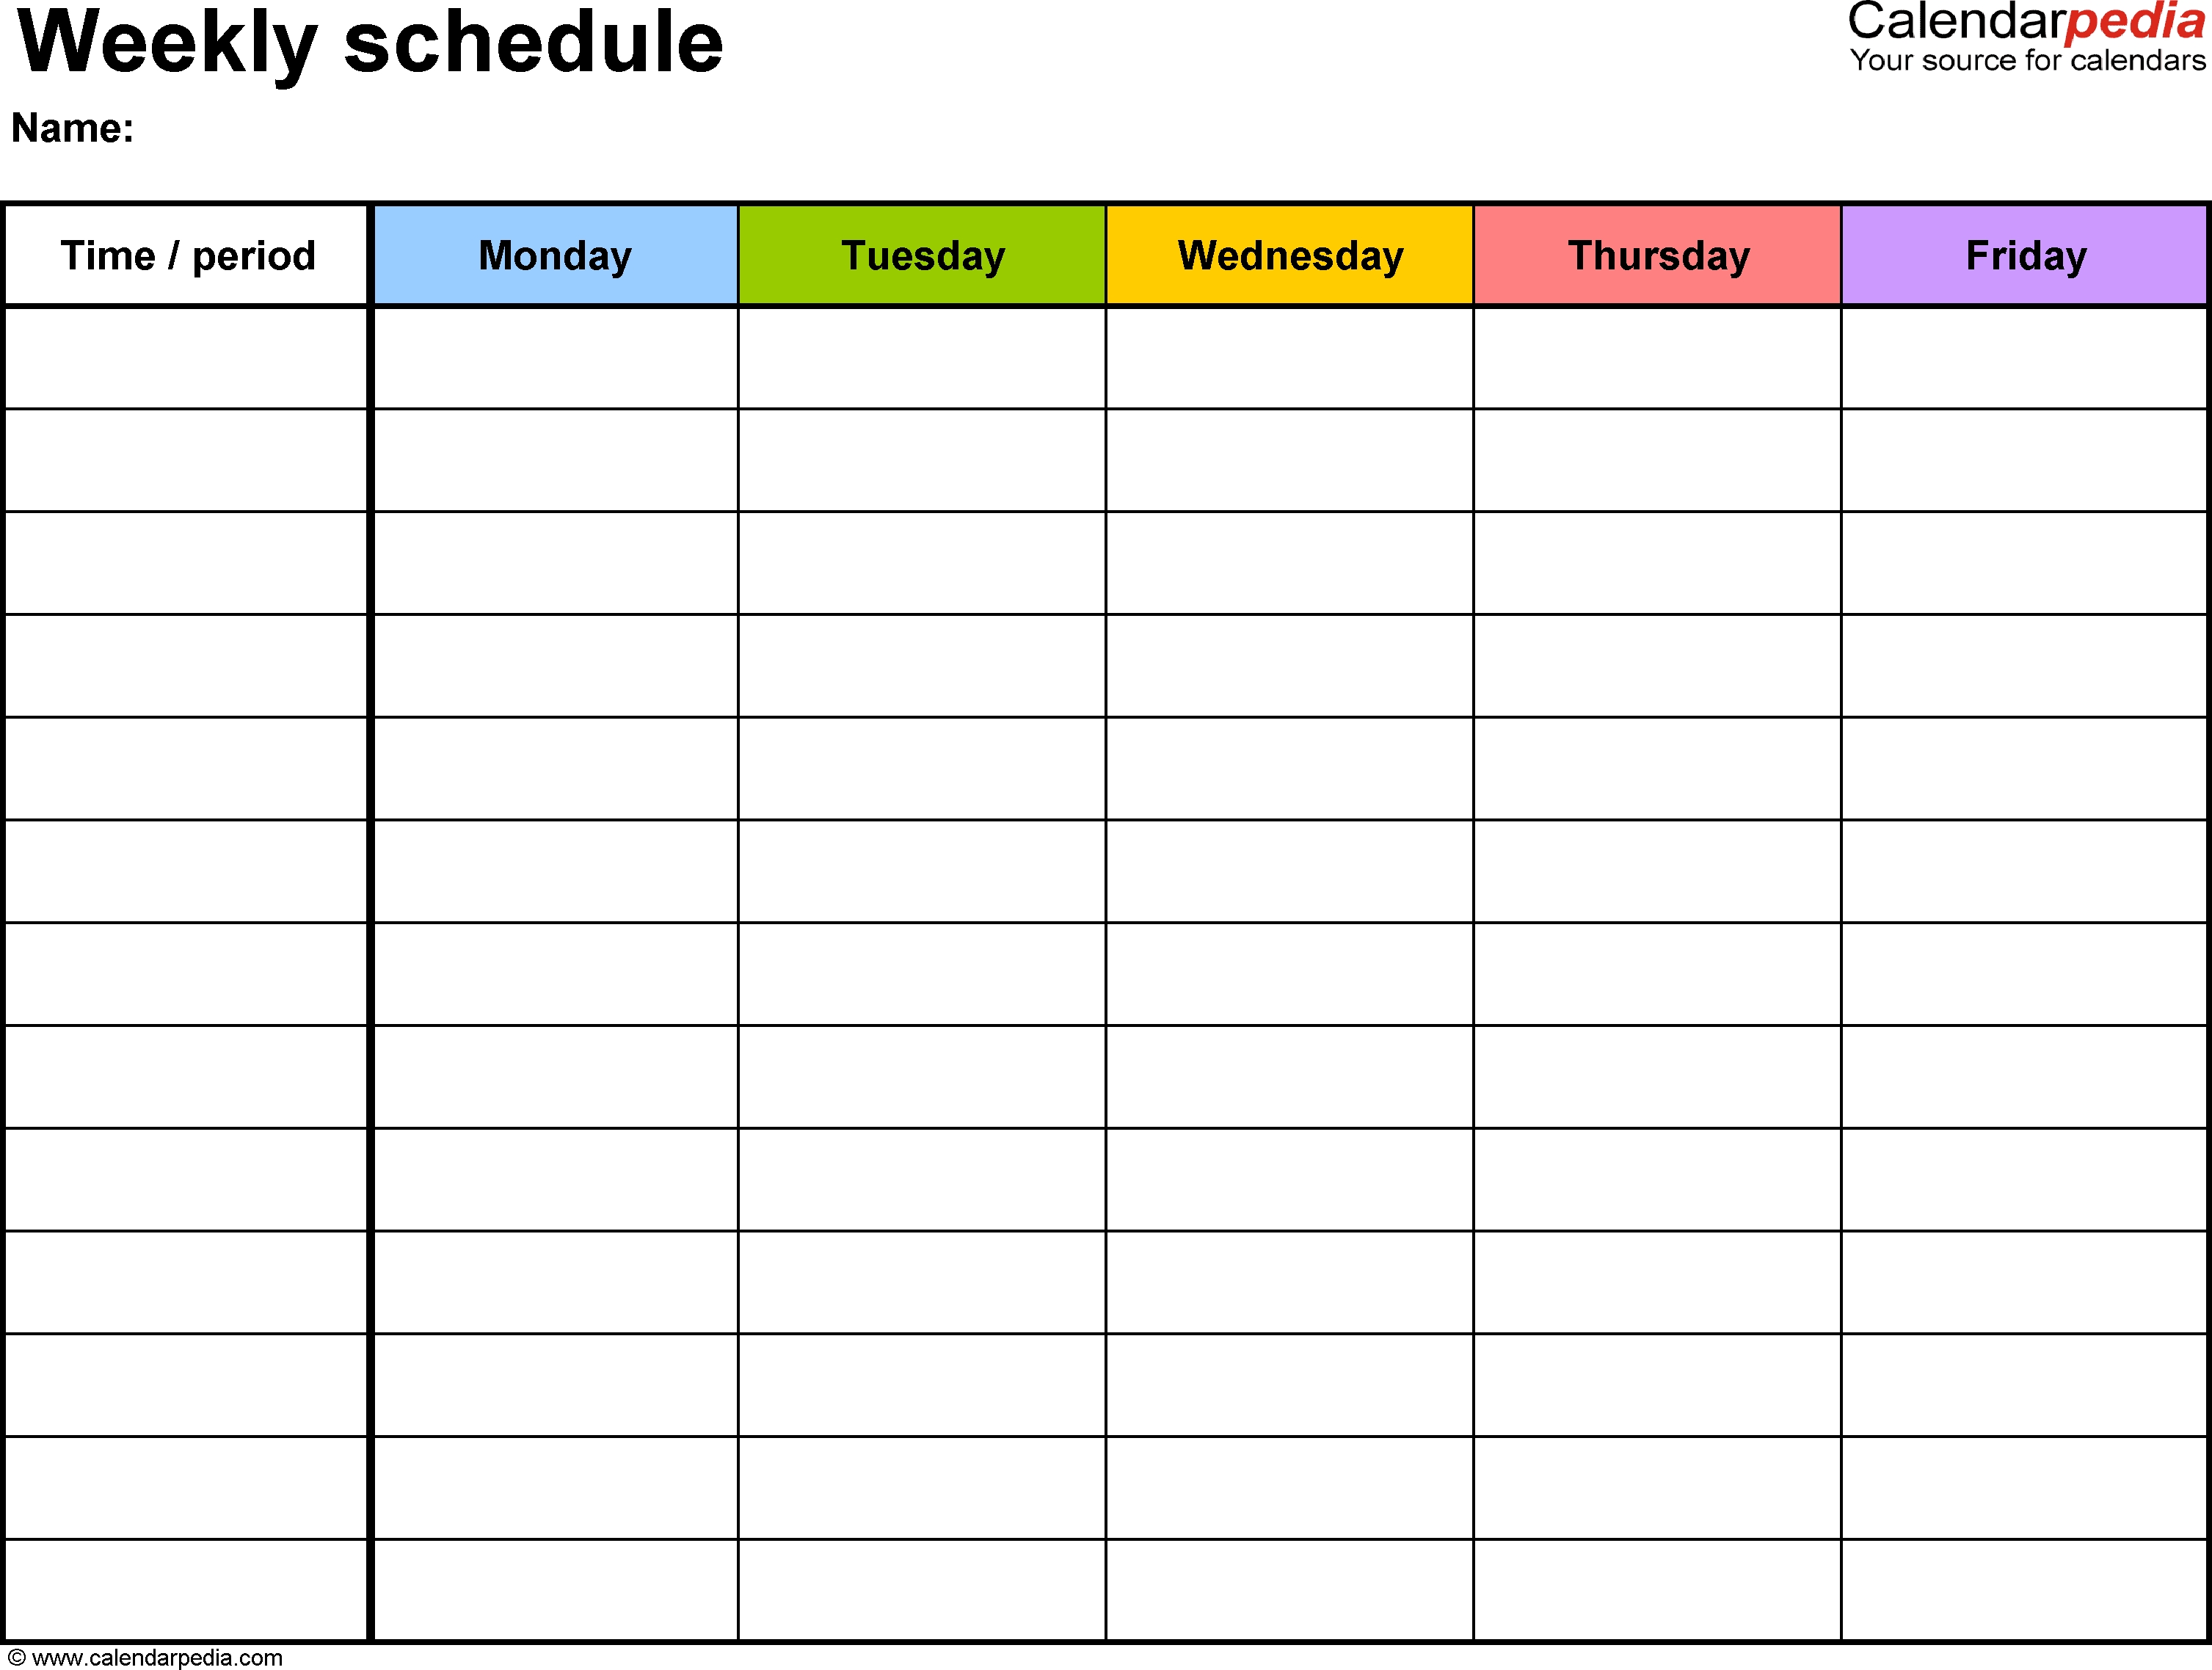 Free Weekly Schedule Templates For Word - 18 Templates-Monday - Friday Diary Template